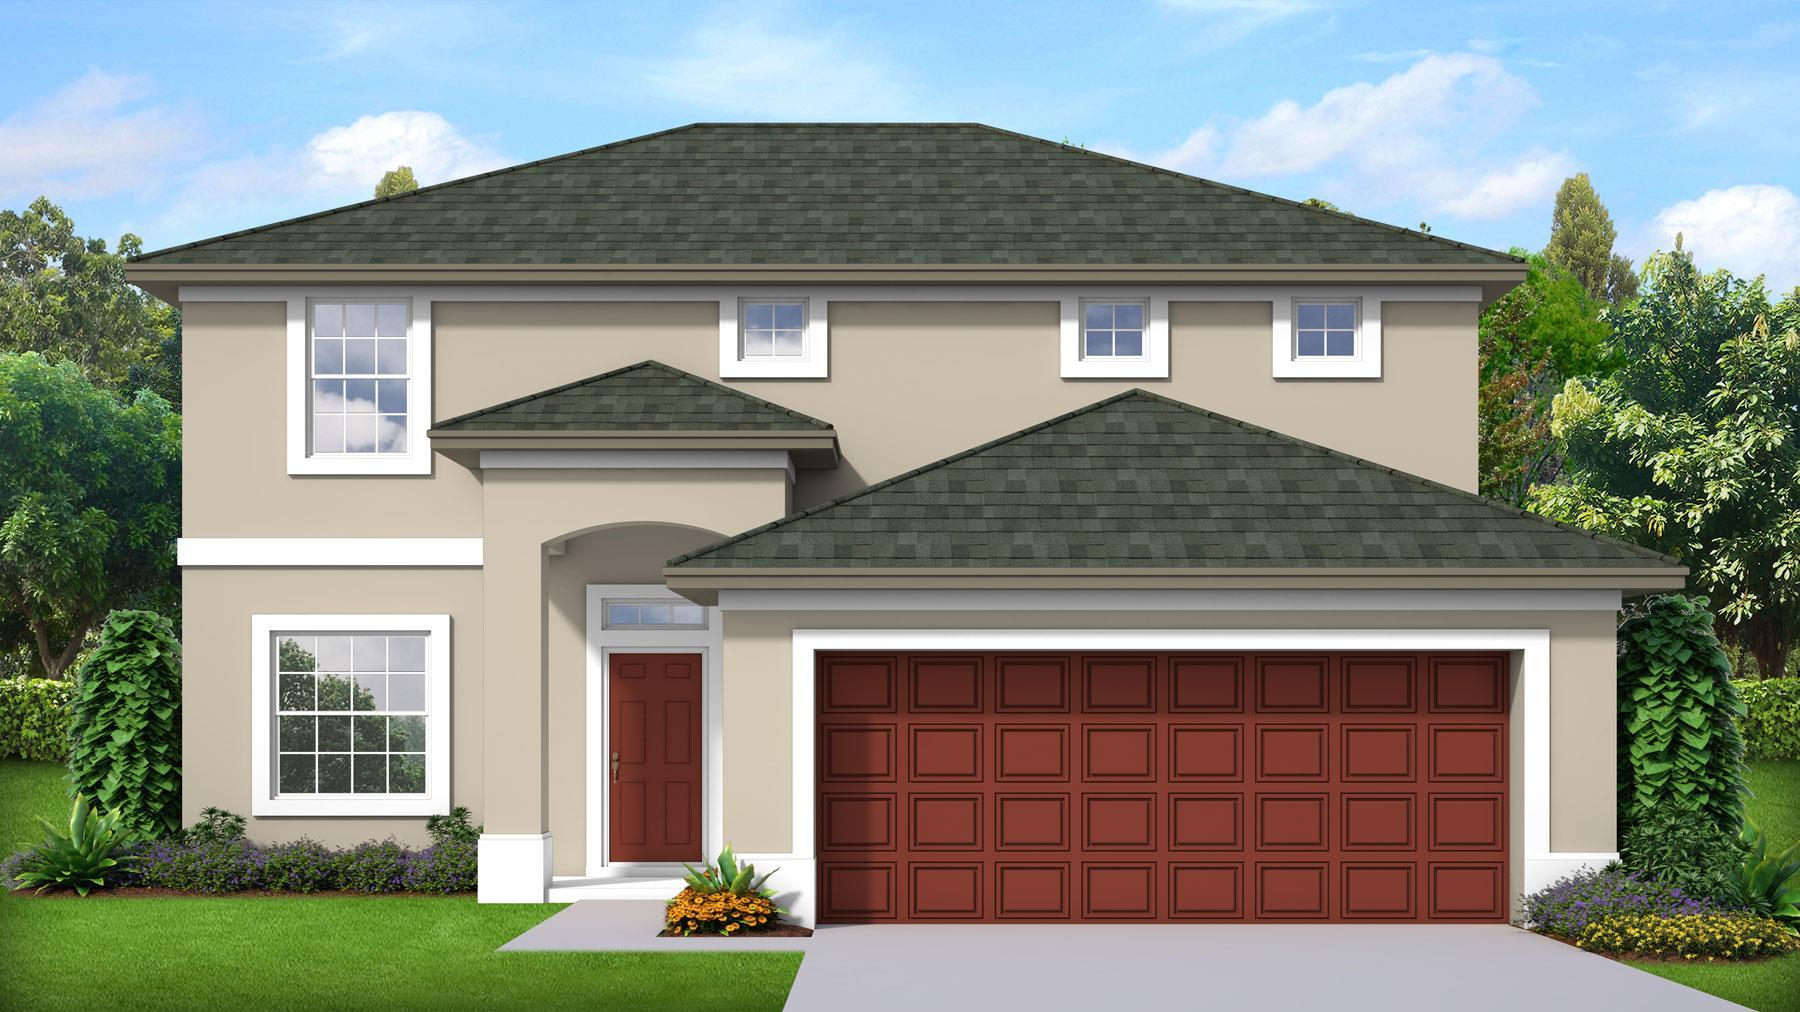 Exterior featured in the Millennial II By Palladio Homes in Melbourne, FL